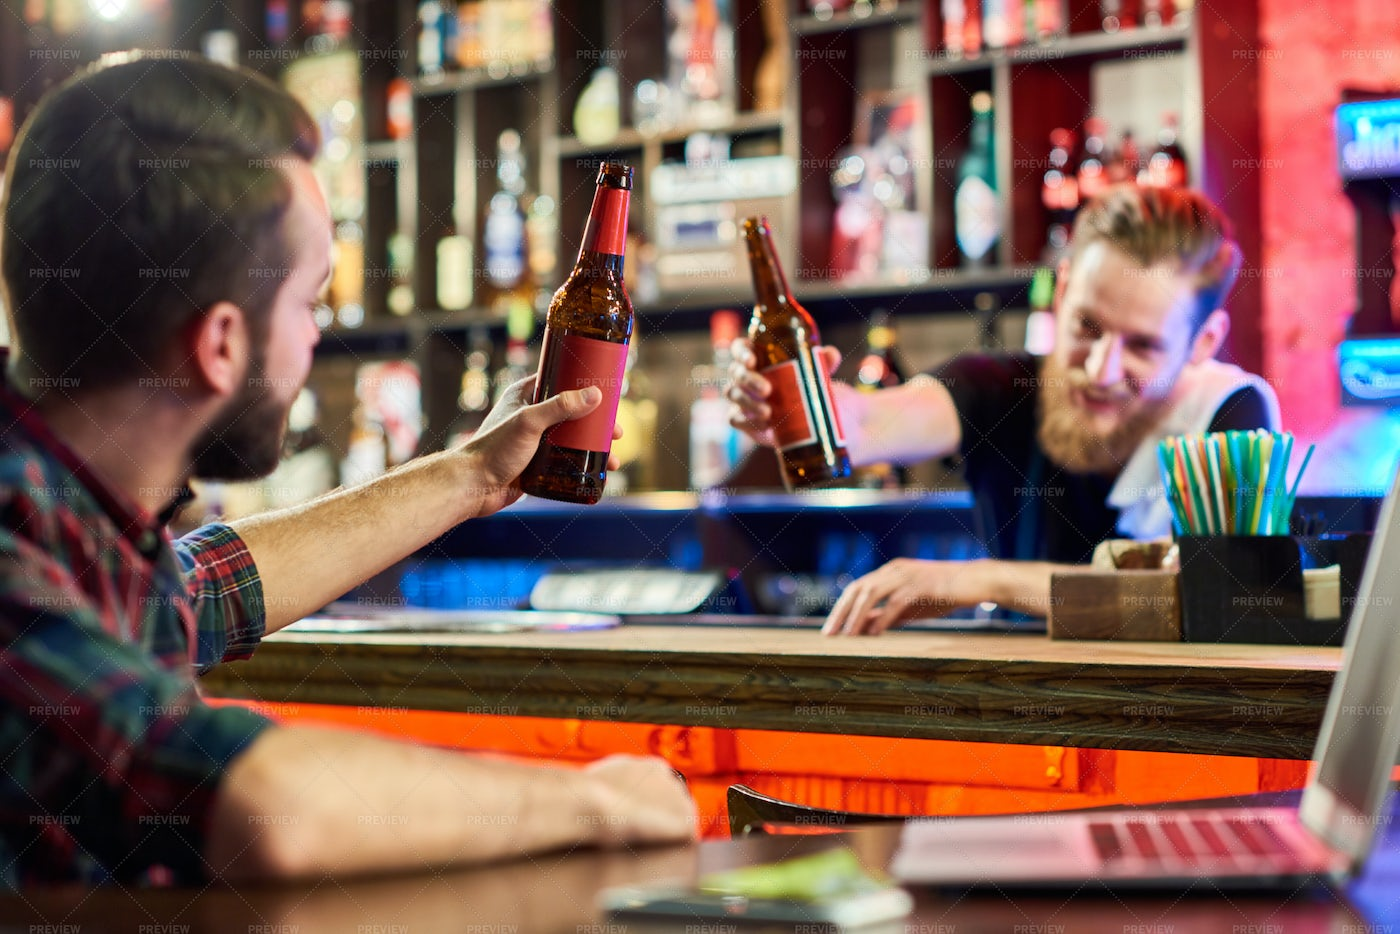 Man Clinking Beer Bottles With...: Stock Photos